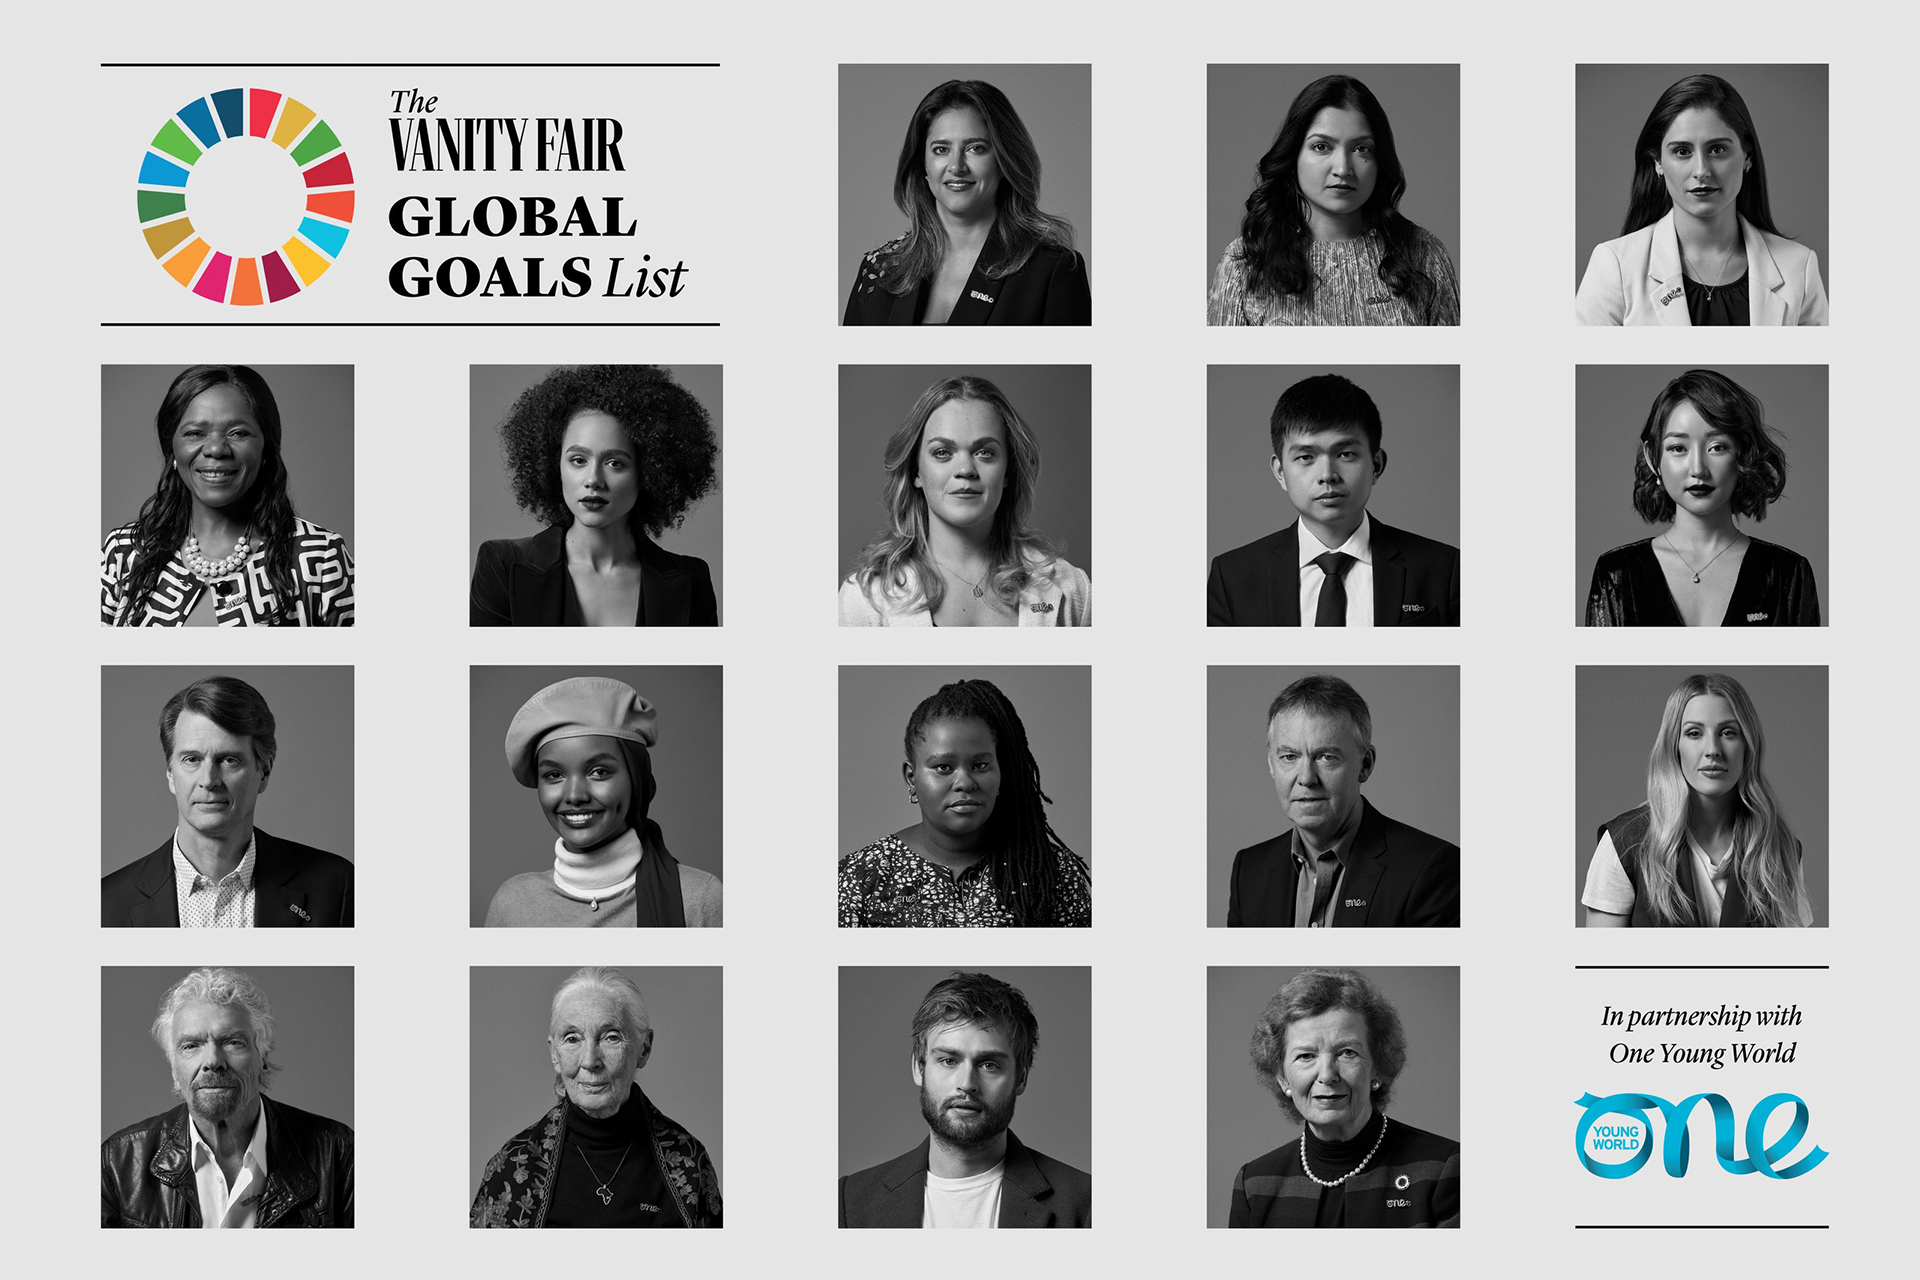 Vanity Fair Global Goals List